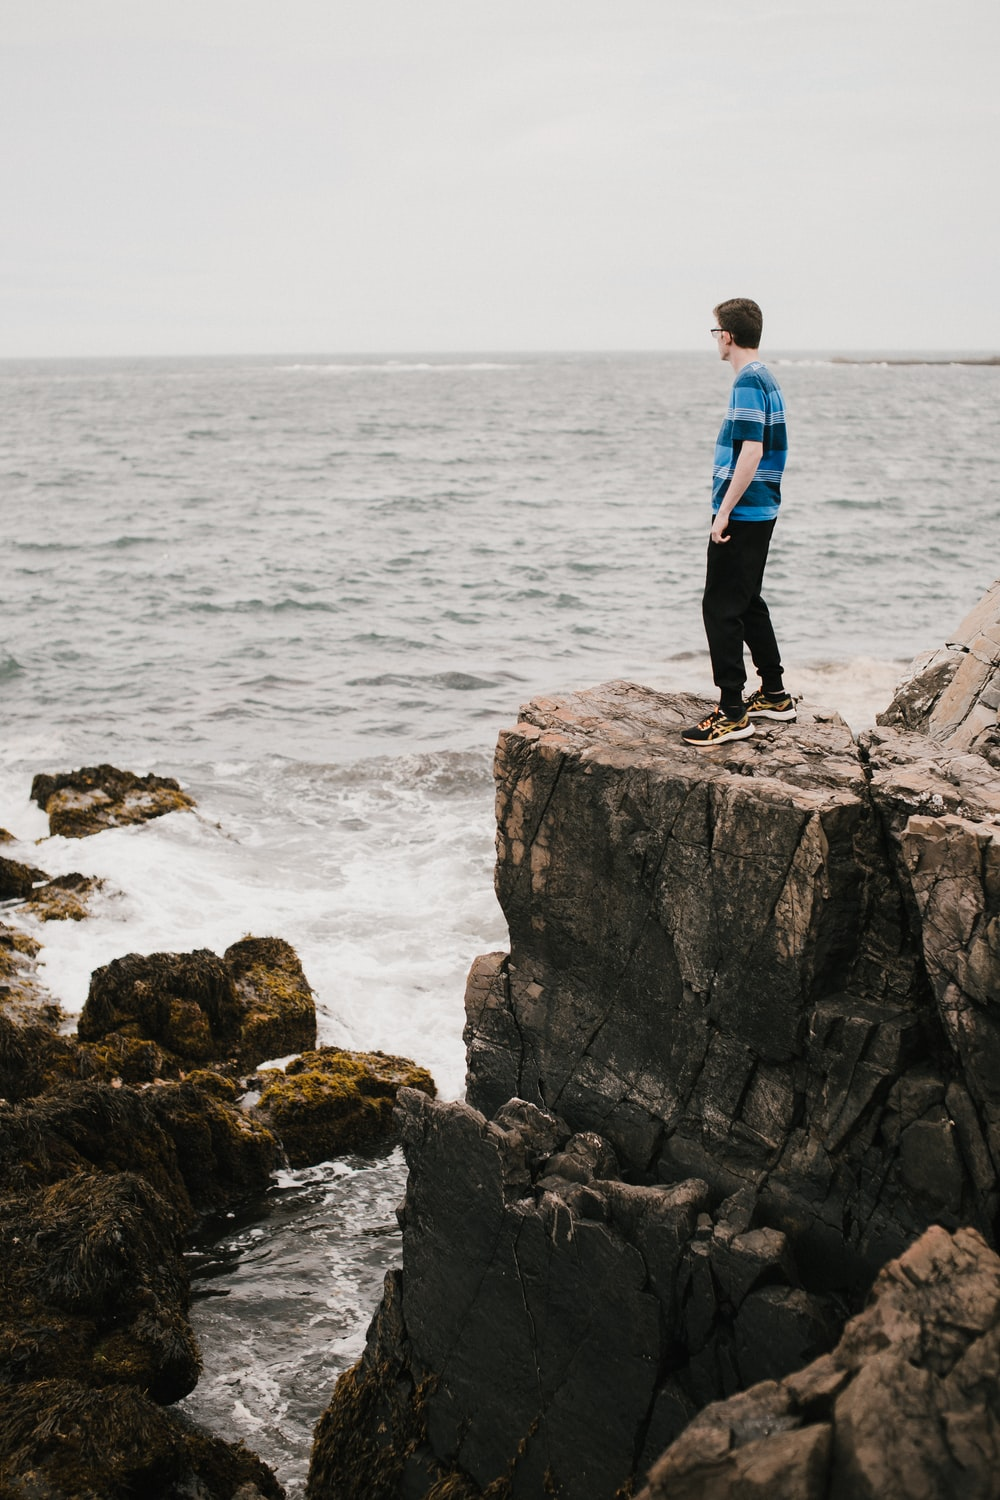 man in blue jacket standing on rock formation near body of water during daytime